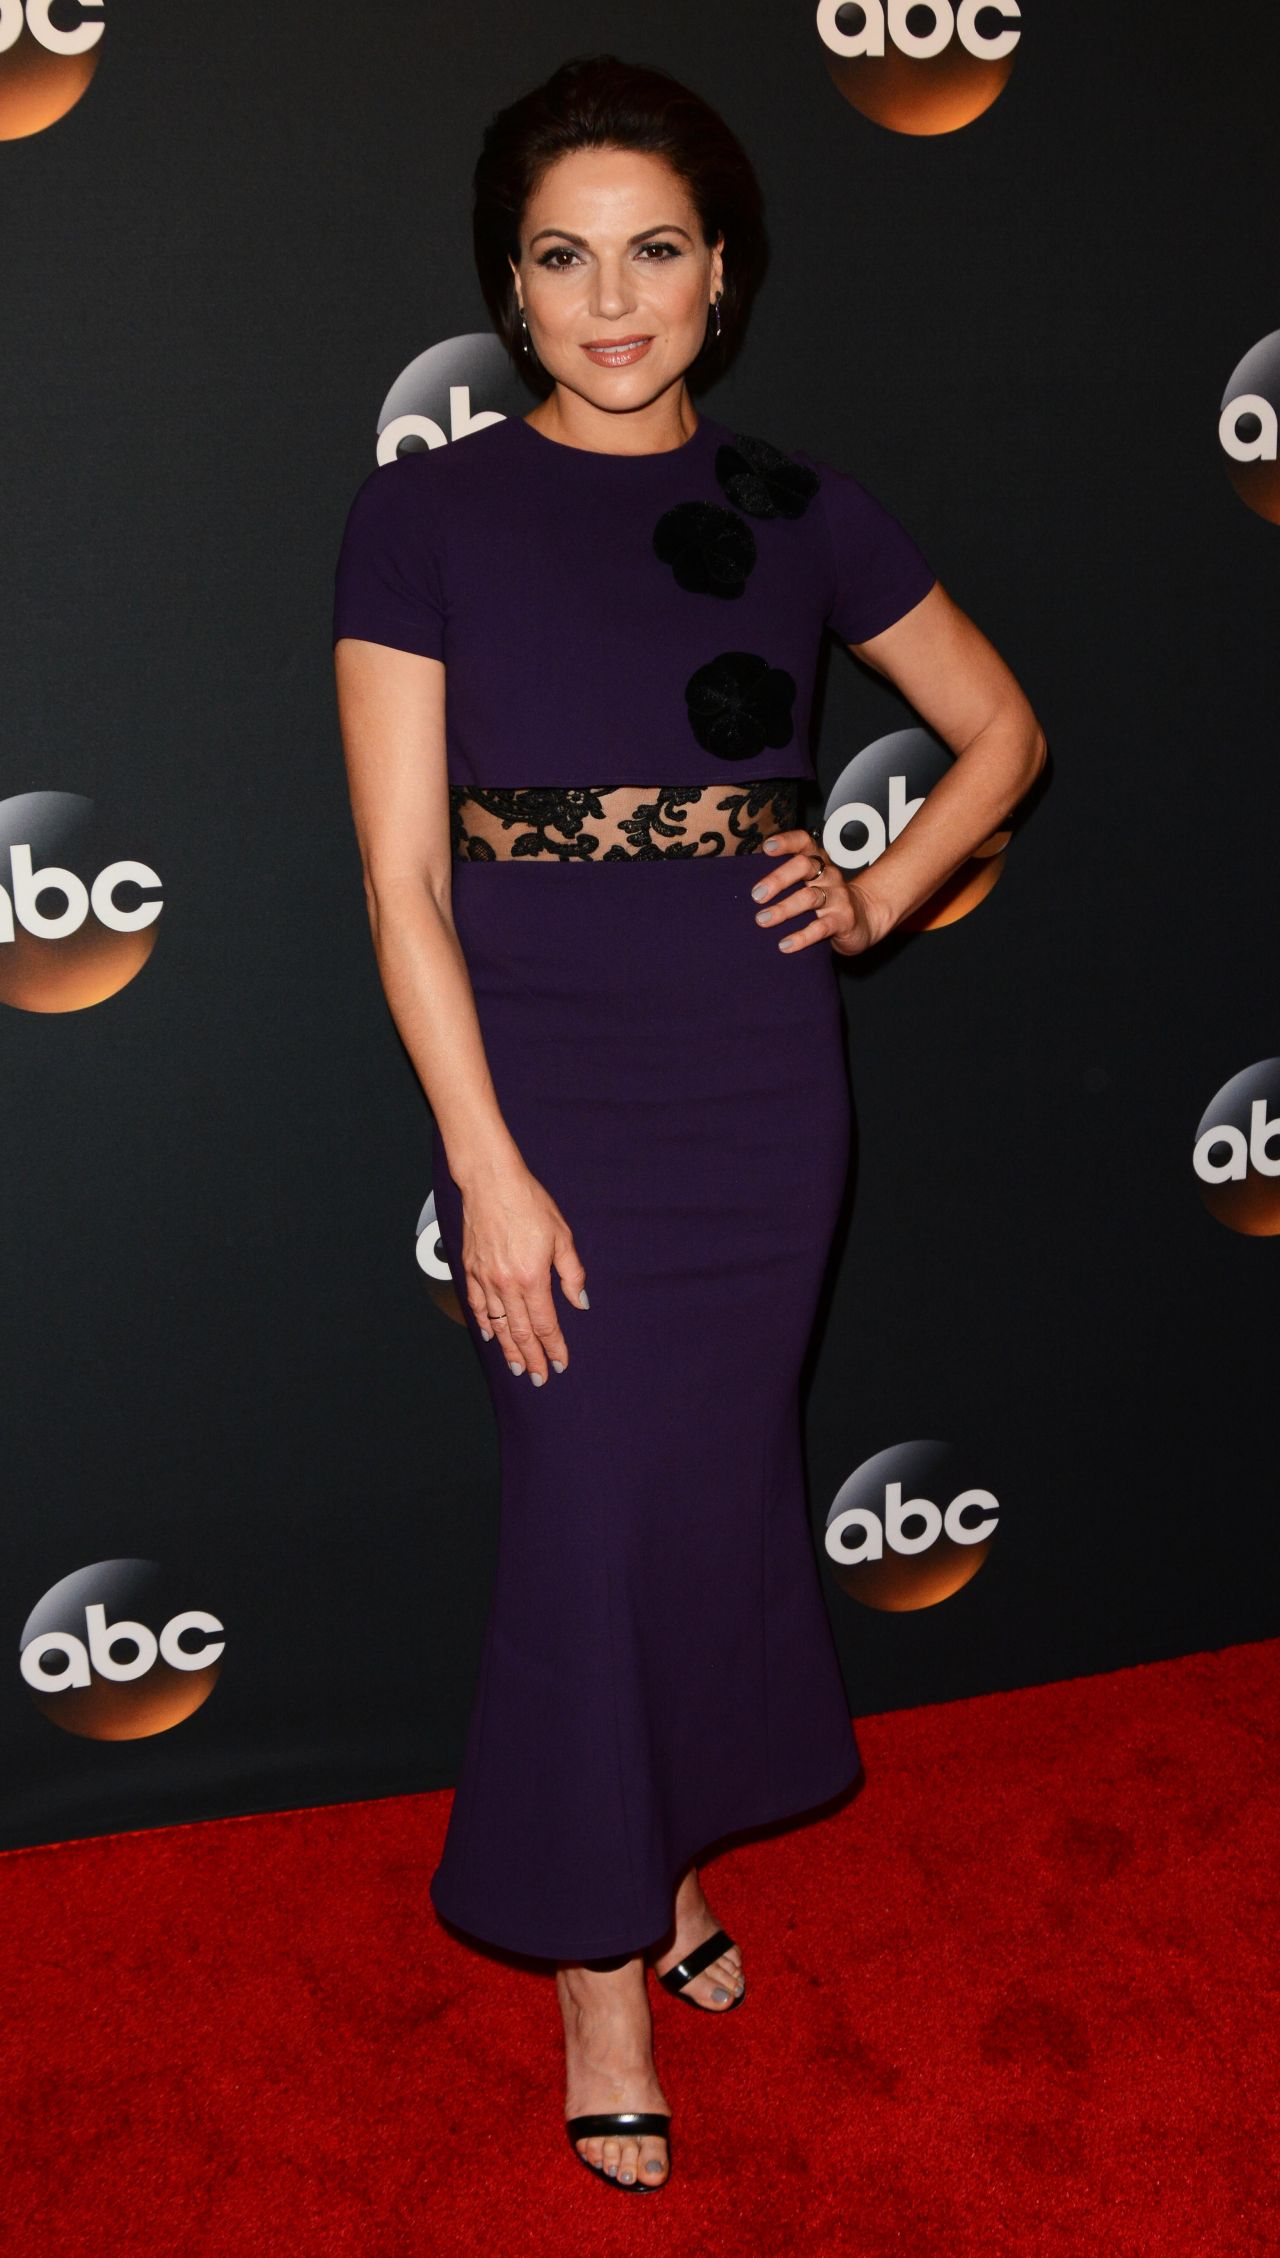 Lana Parrilla Abc Upfront Presentation In New York 05 16